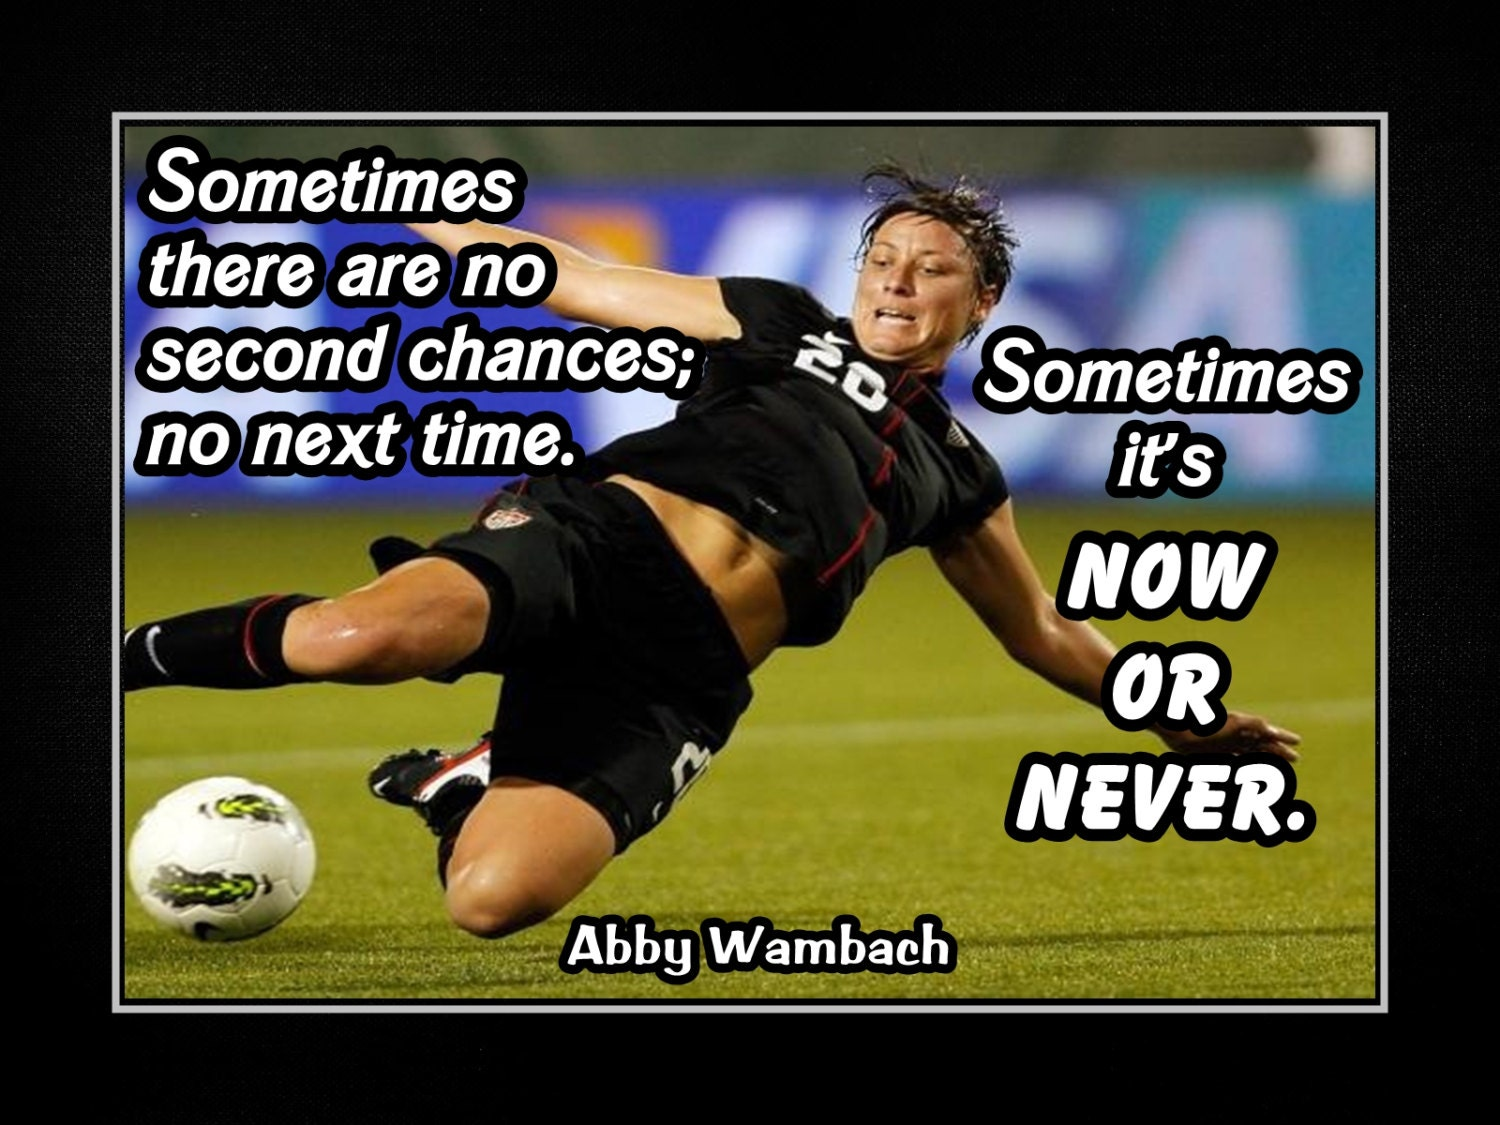 Carli Lloyd Quotes Abby Wambach Girls Soccer Motivational Poster Daughter